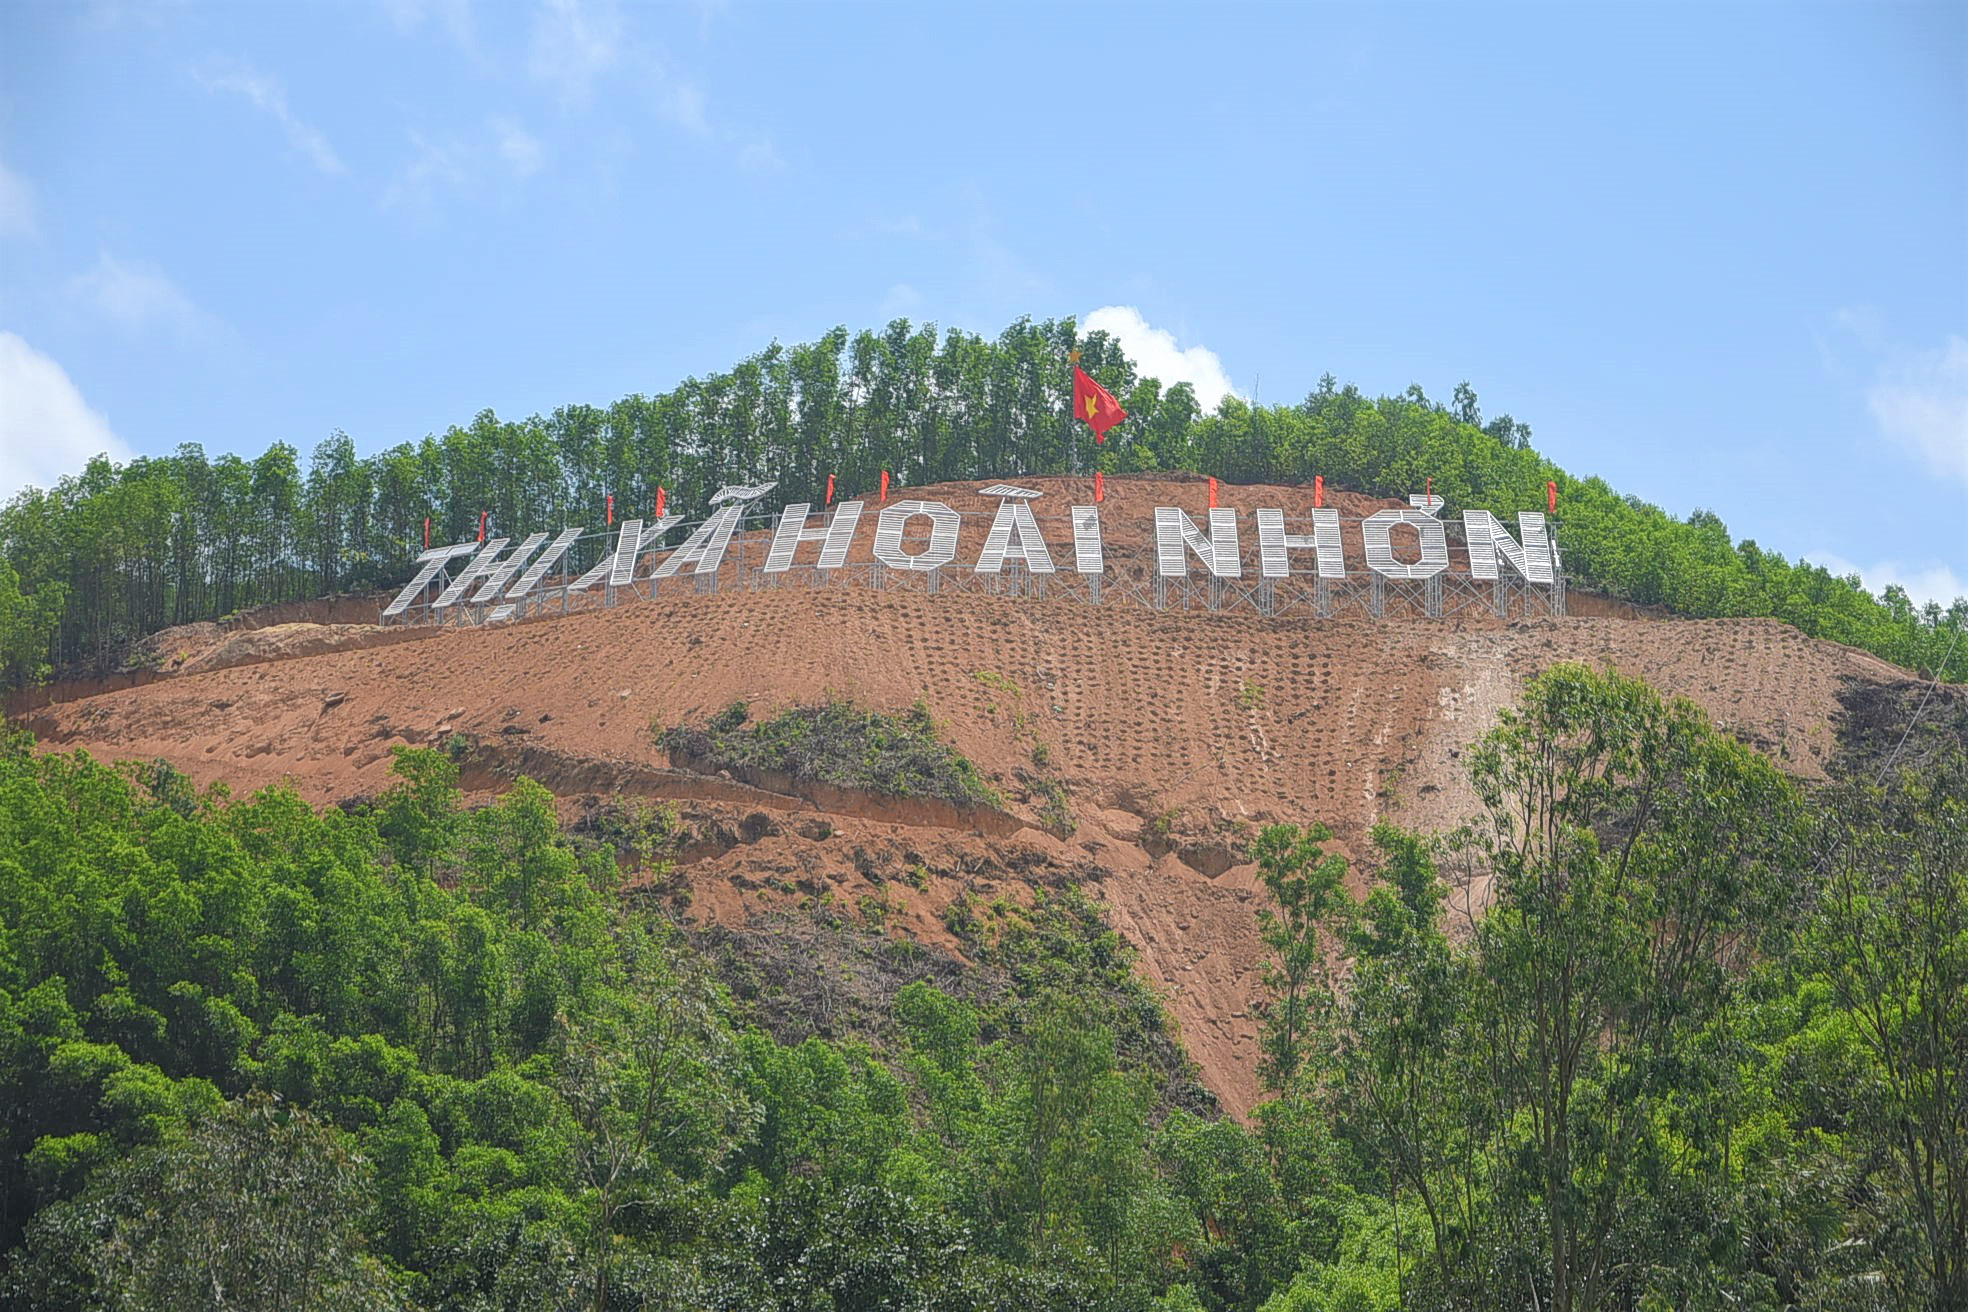 South-central Vietnamese town says to afforest after deforestation for landmark sign